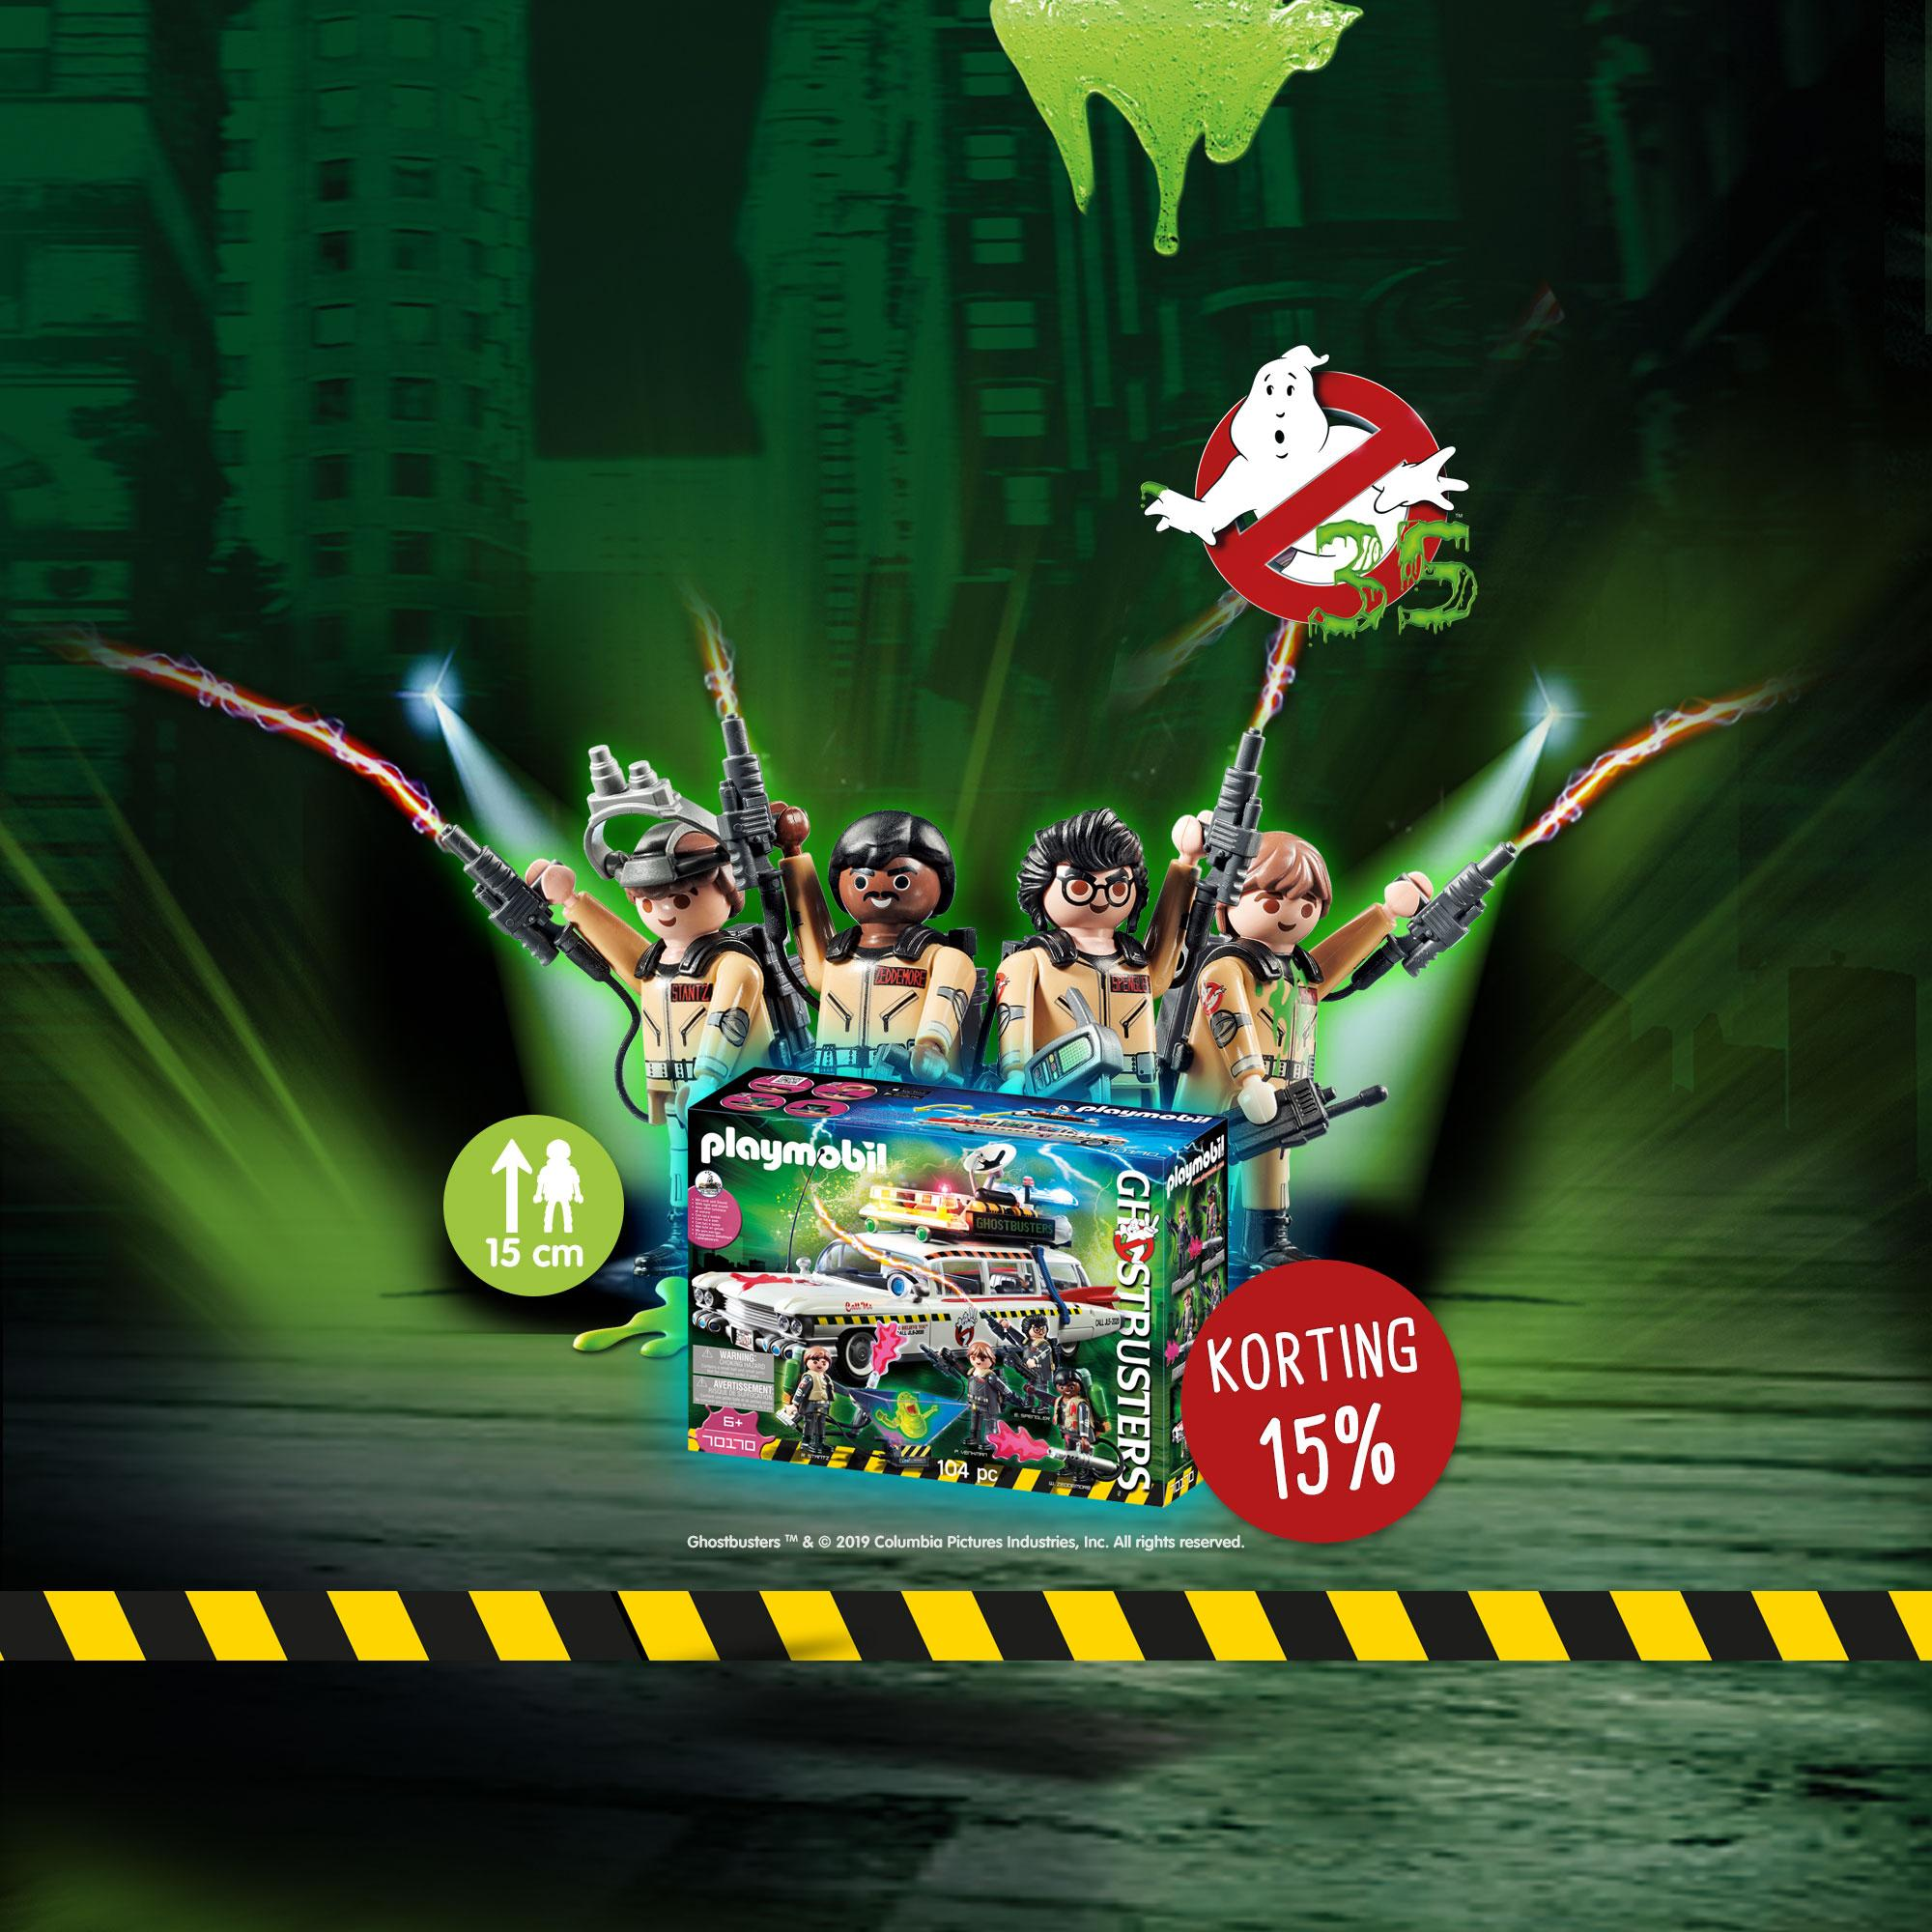 SHOP_SONY_GHOSTBUSTERS_PROMO_2019_2x2_nl